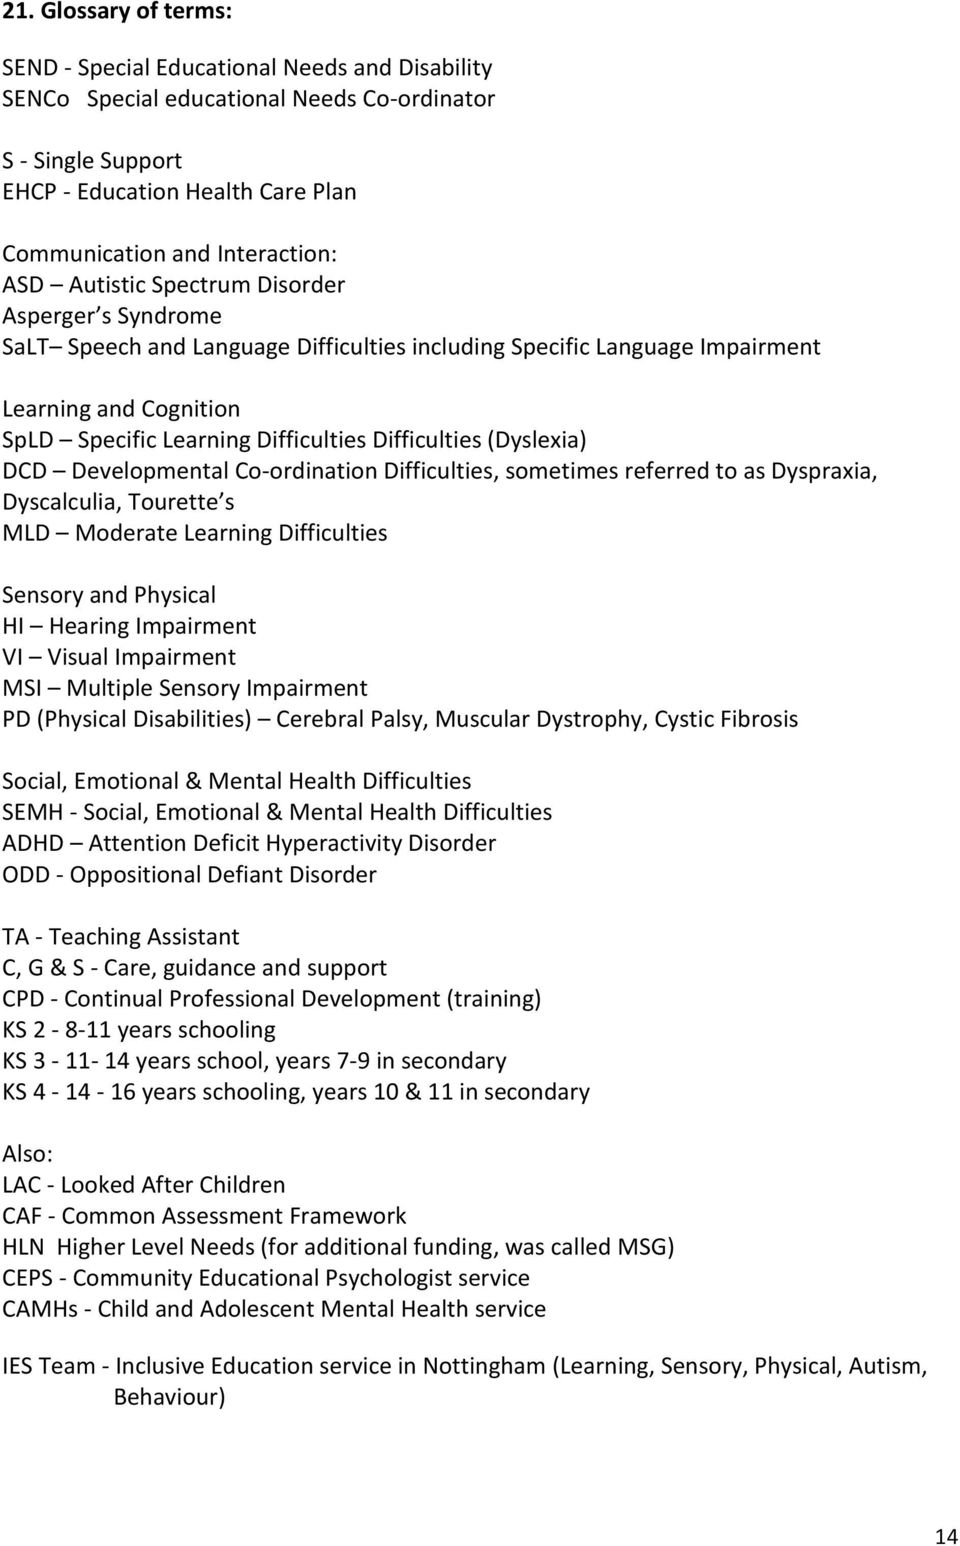 (Dyslexia) DCD Developmental Co-ordination Difficulties, sometimes referred to as Dyspraxia, Dyscalculia, Tourette s MLD Moderate Learning Difficulties Sensory and Physical HI Hearing Impairment VI